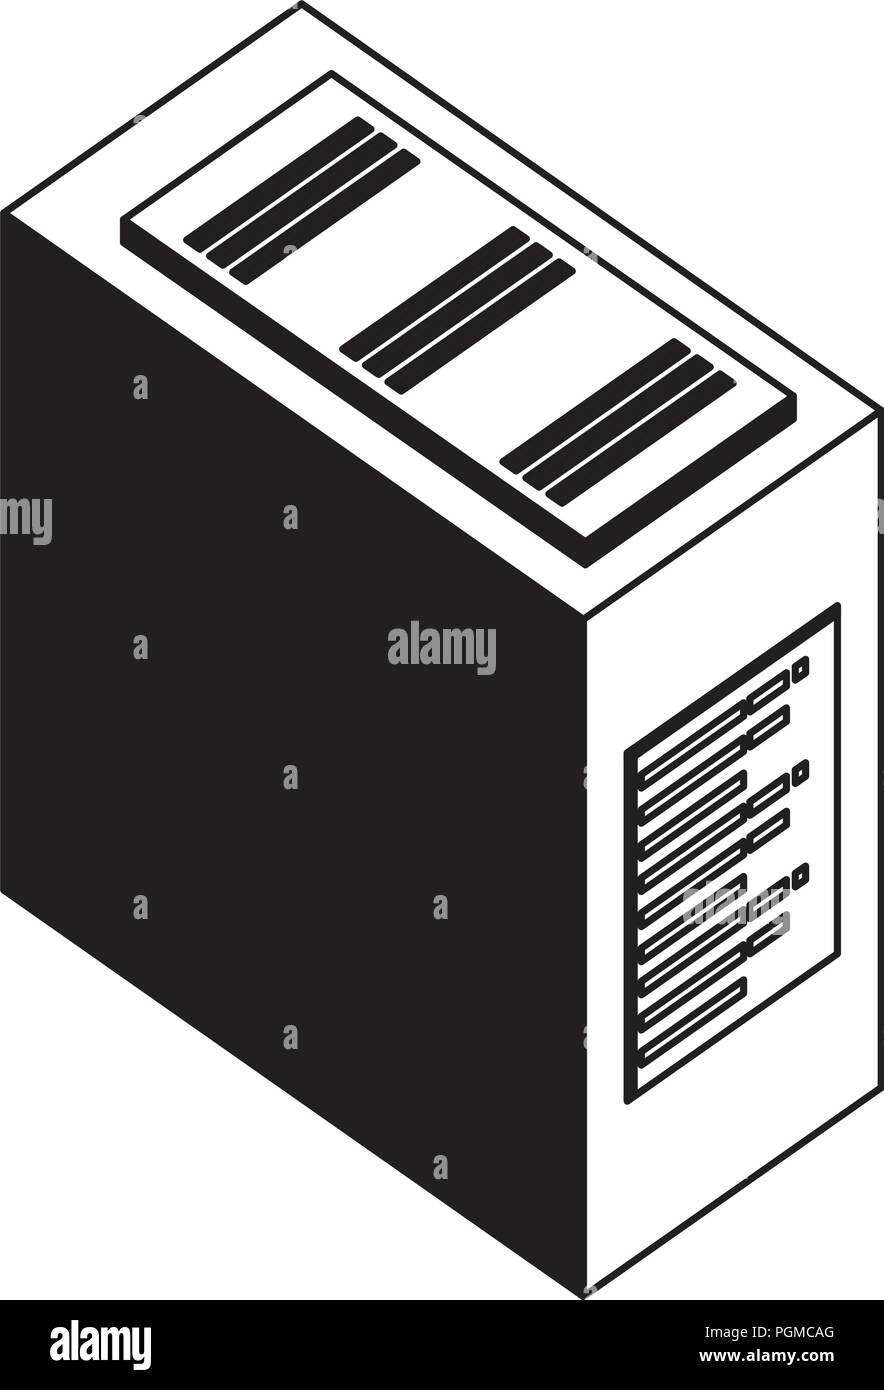 computer server case cpu hardware vector illustration stock vector image art alamy https www alamy com computer server case cpu hardware vector illustration image216807656 html